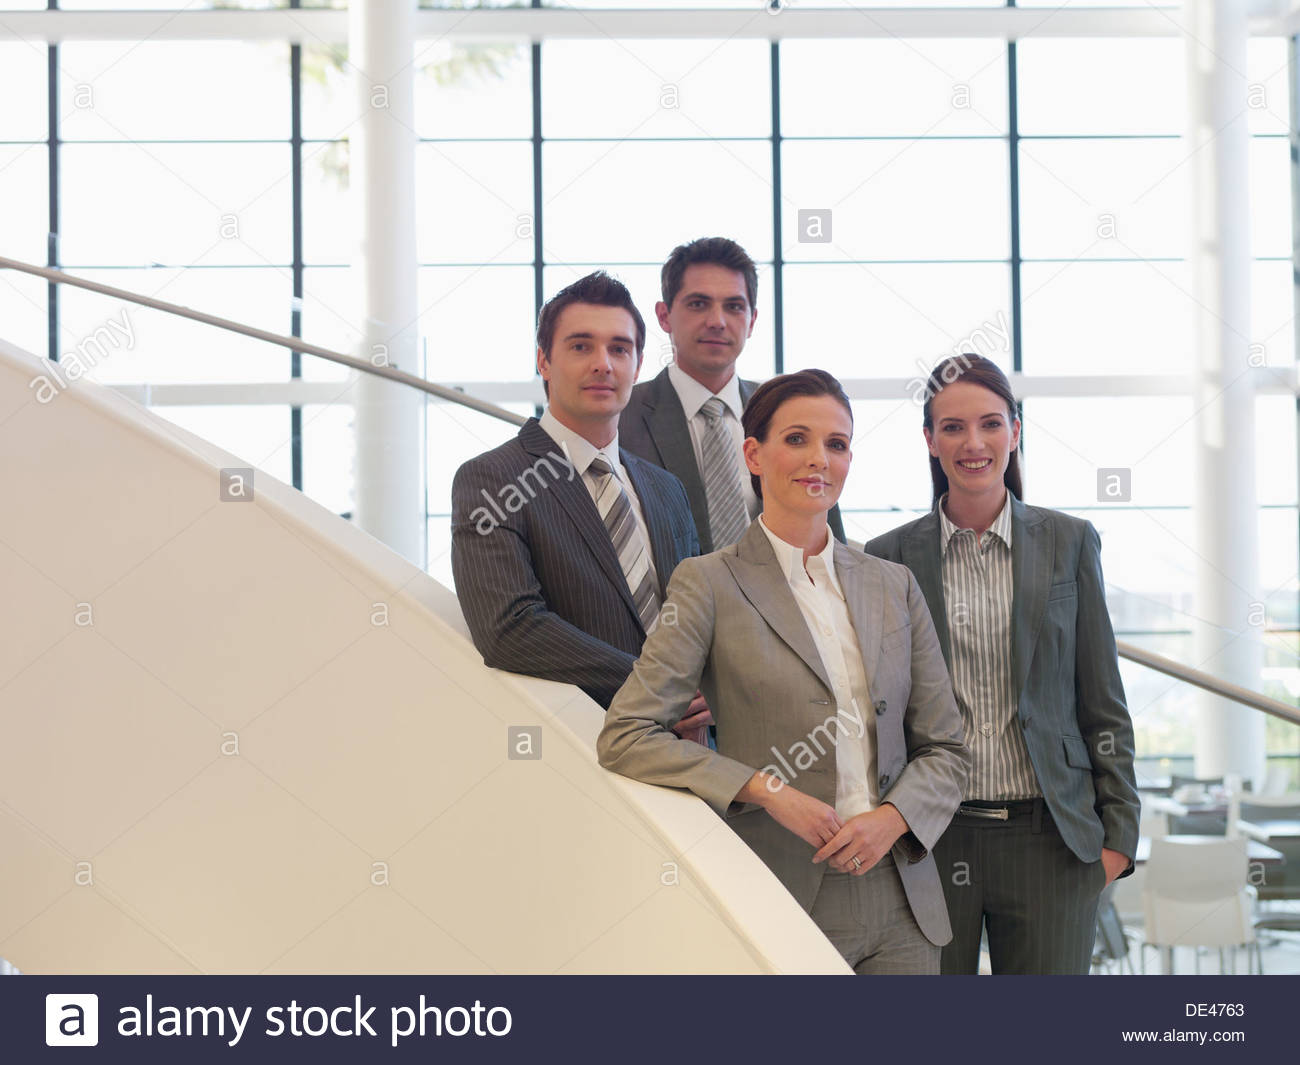 Business people standing on staircase - Stock Image